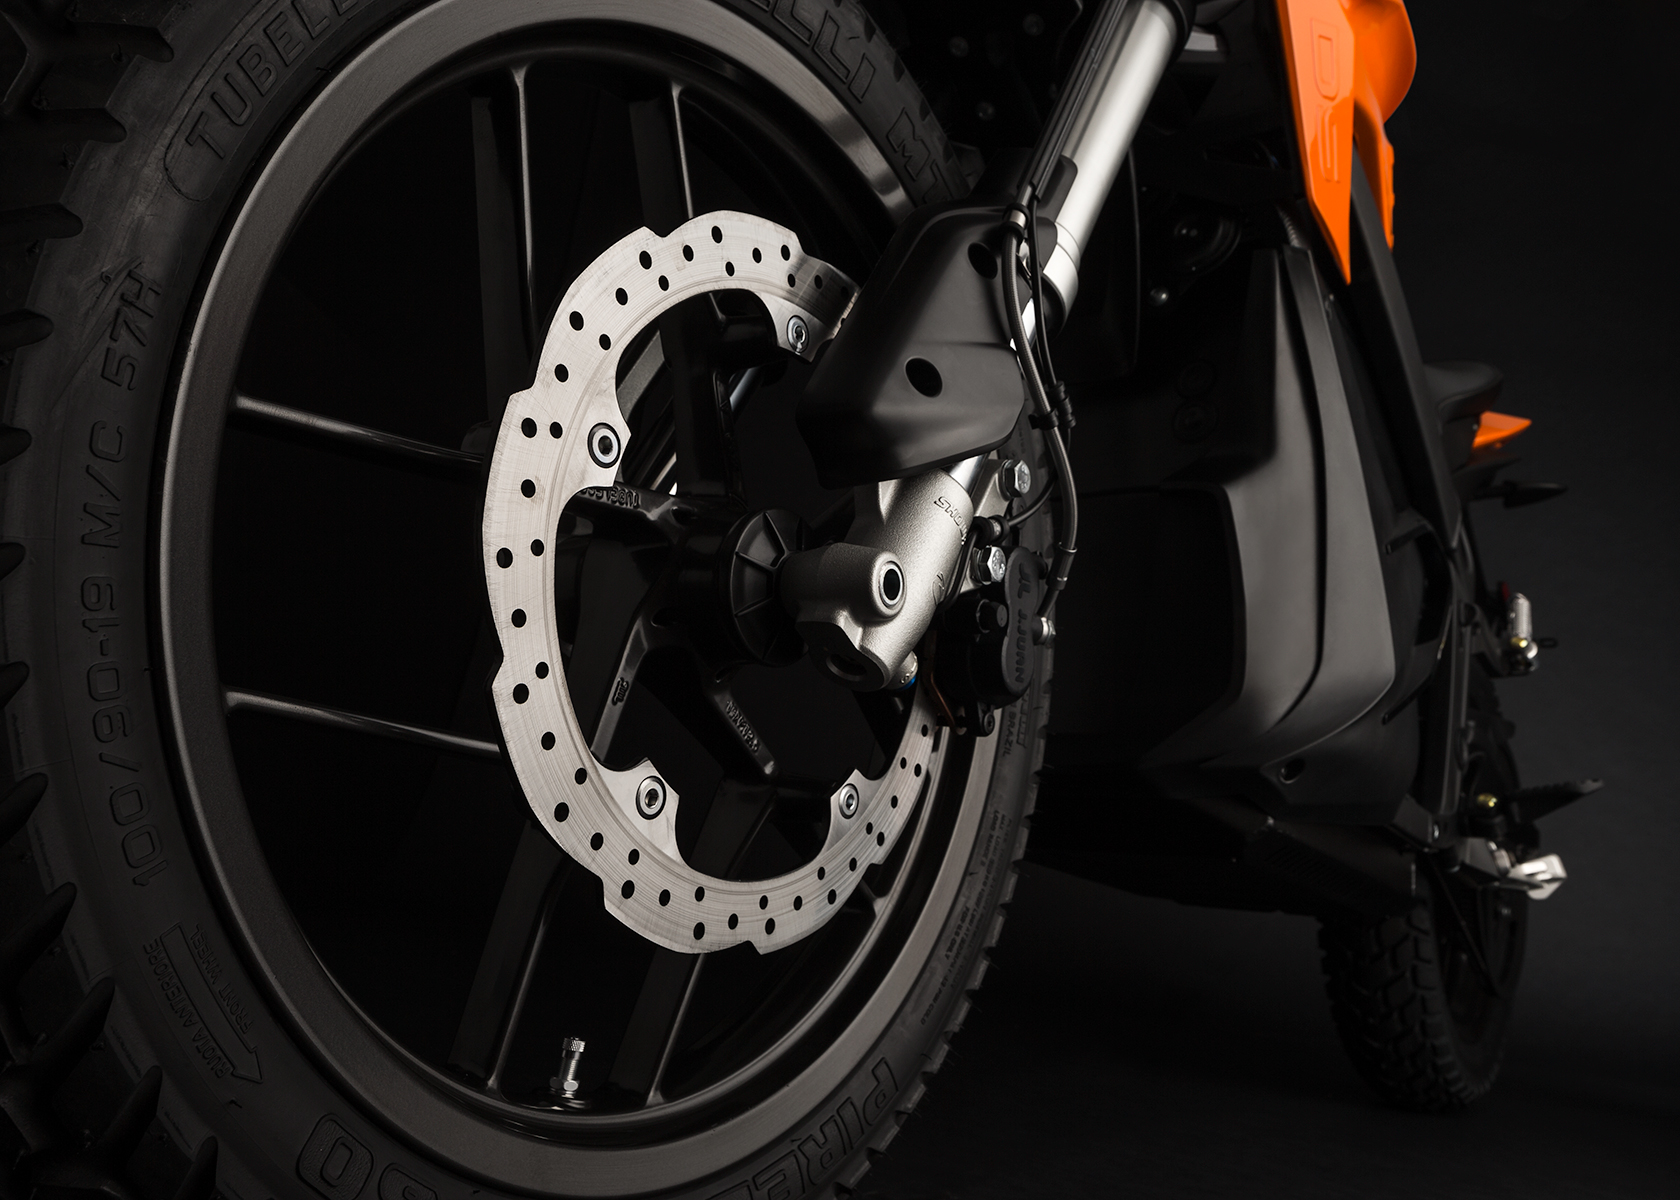 2015 Zero DS Electric Motorcycle: Front Brake